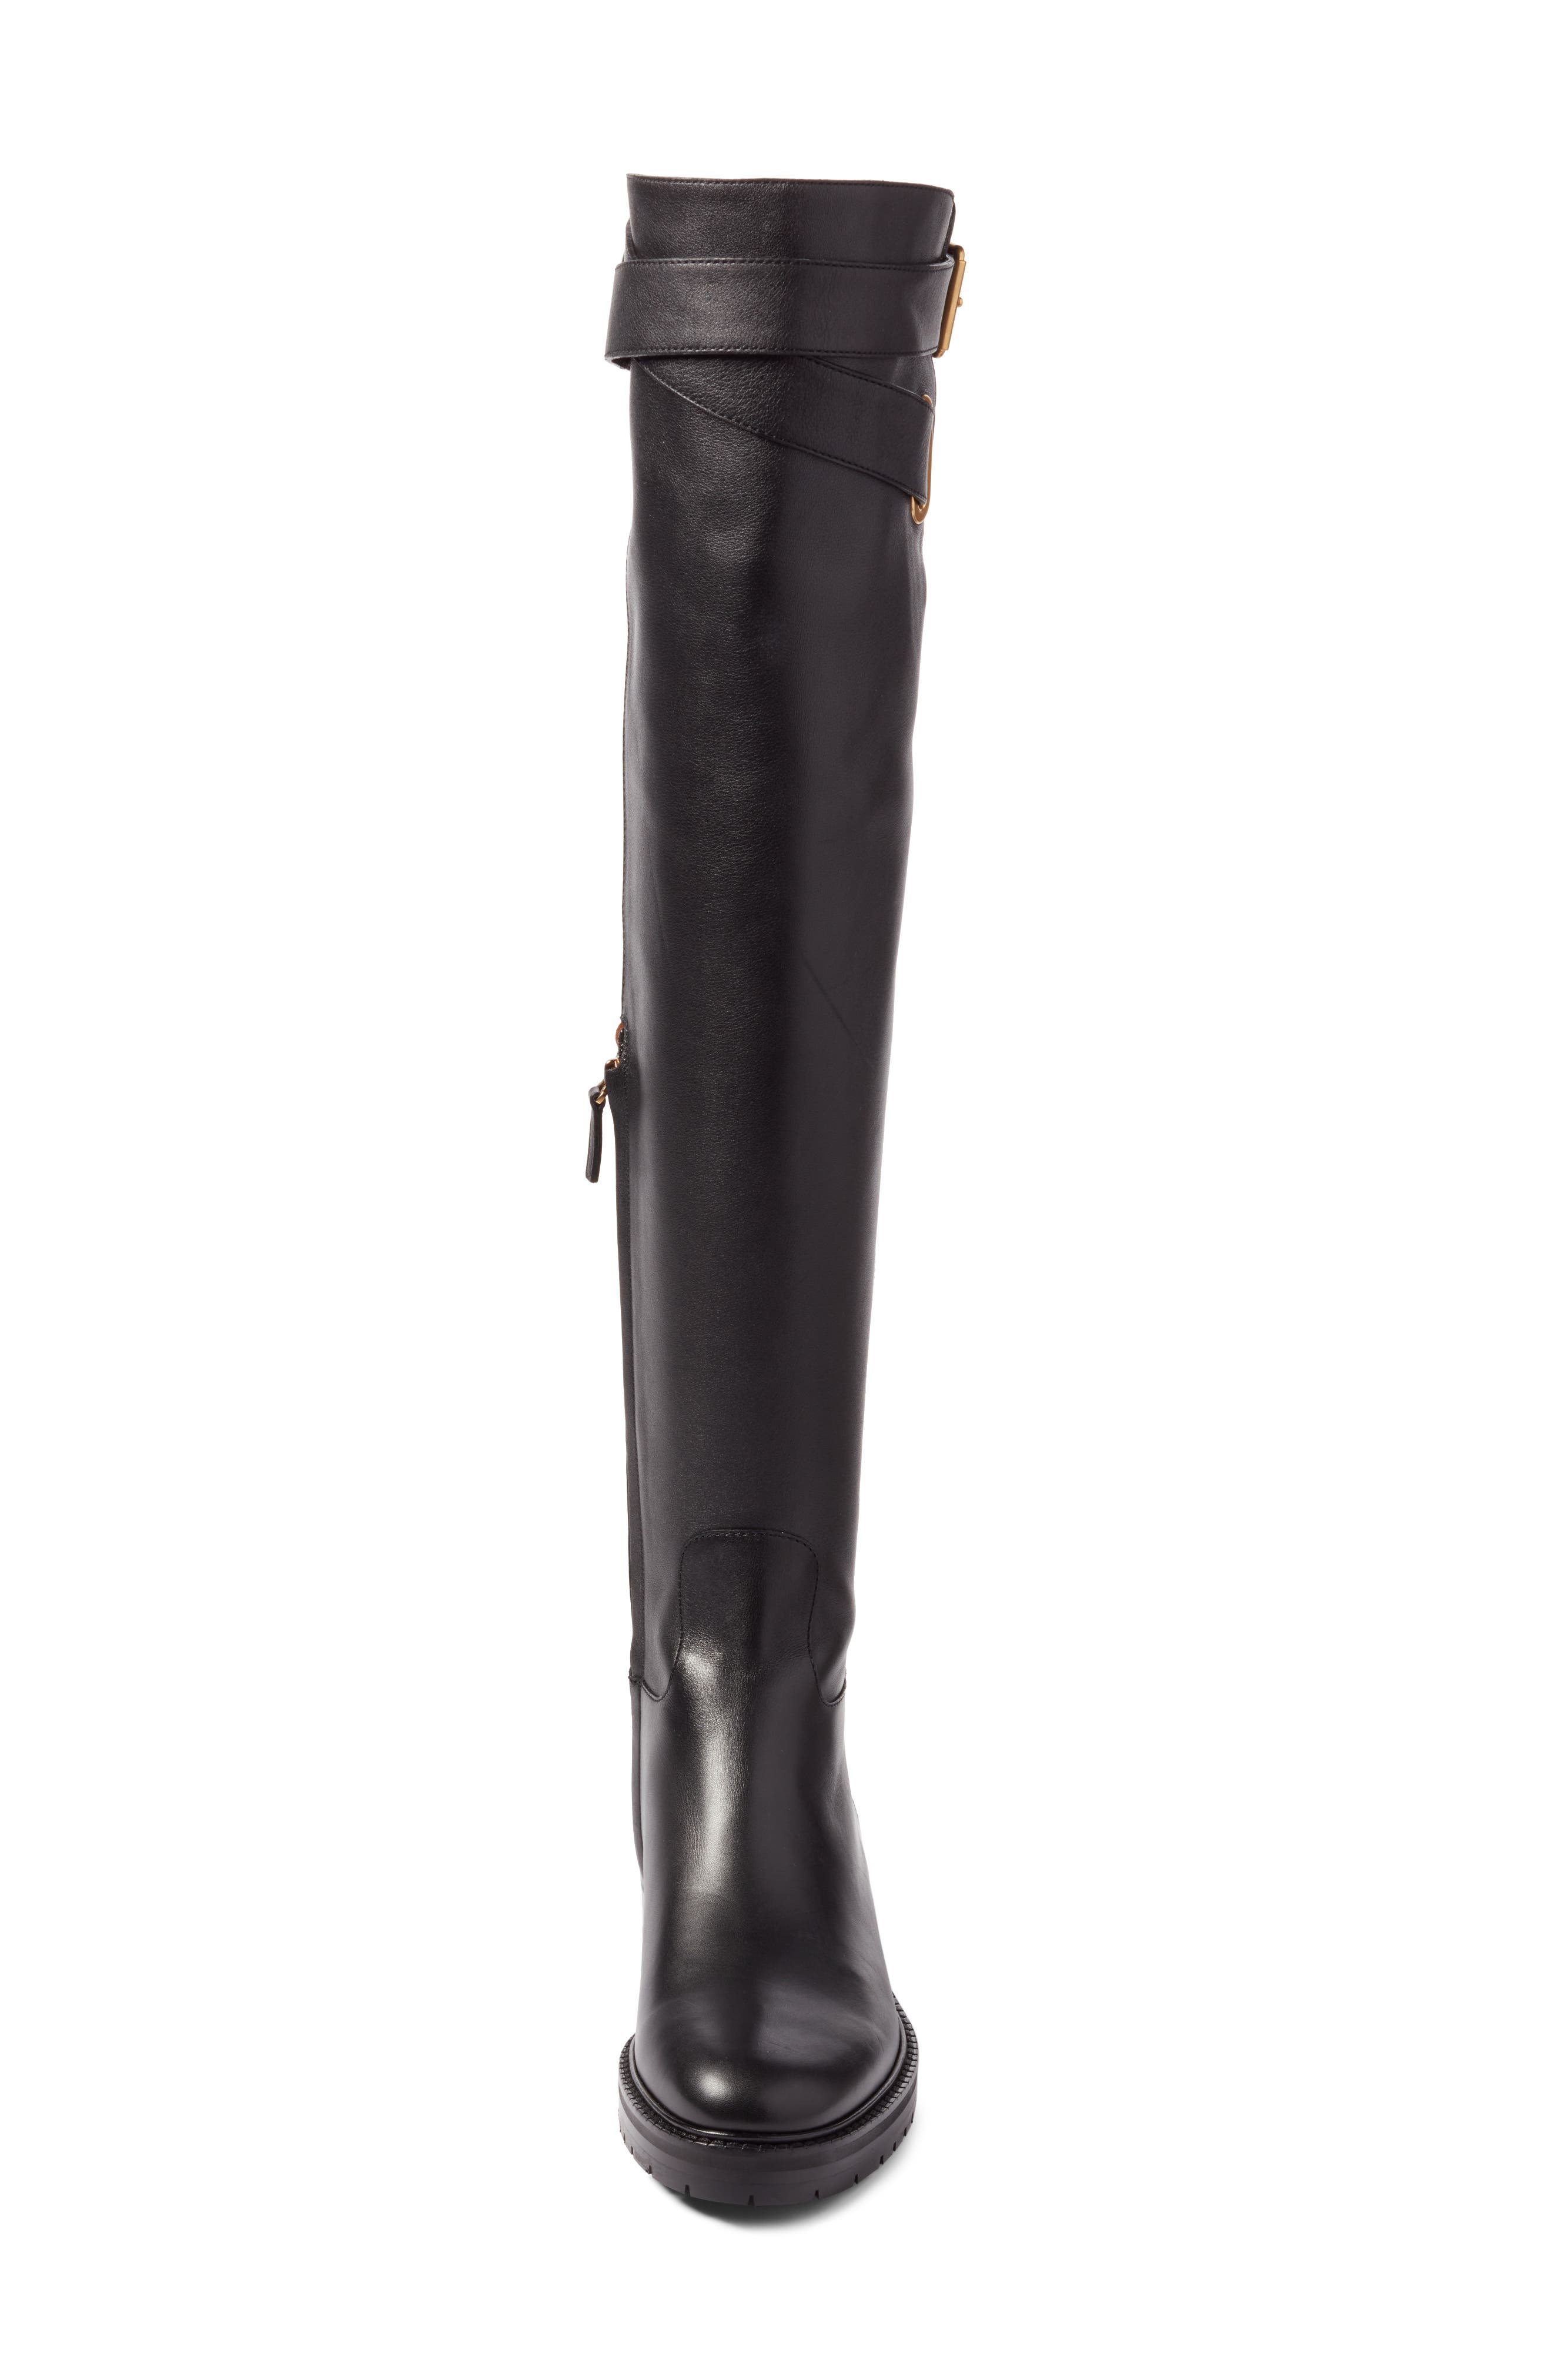 Bowrap Over the Knee Boot,                             Alternate thumbnail 4, color,                             001